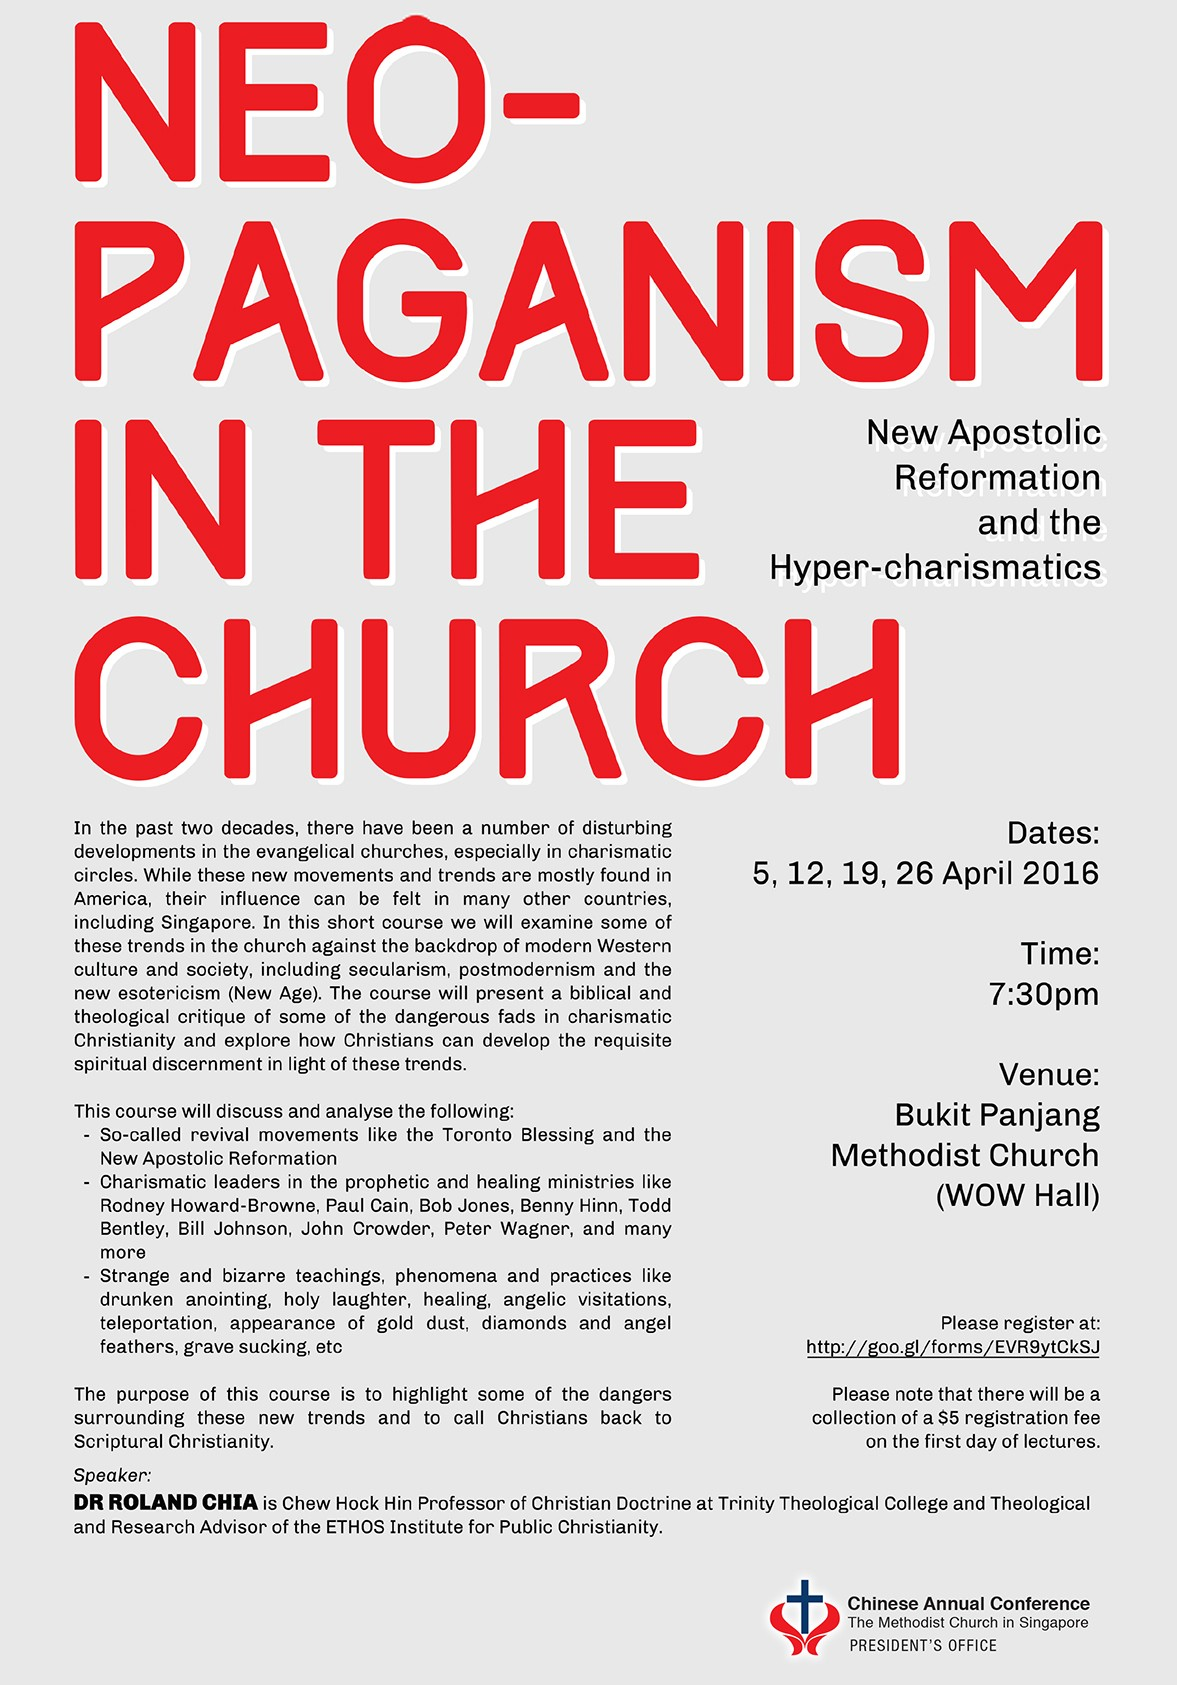 CAC Course: Neo-Paganism in the Church